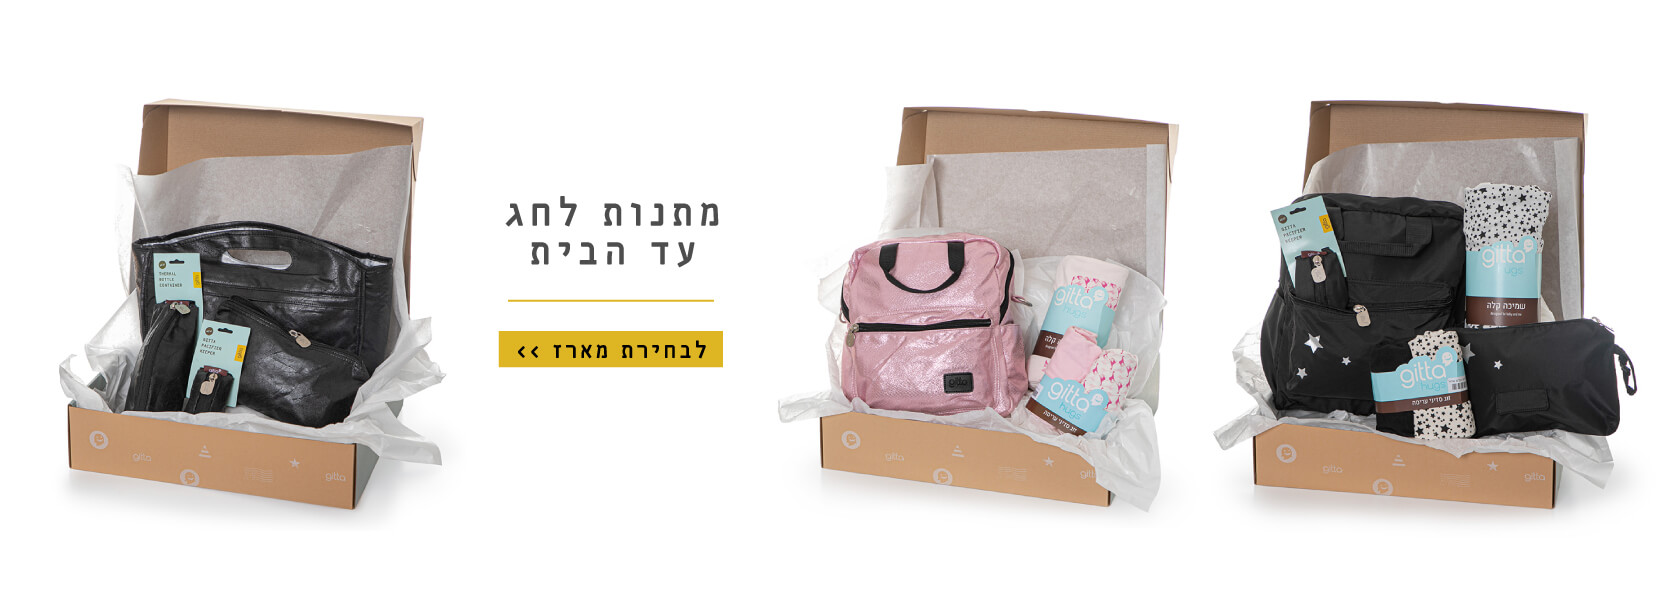 bundles-comp-pesach-comp